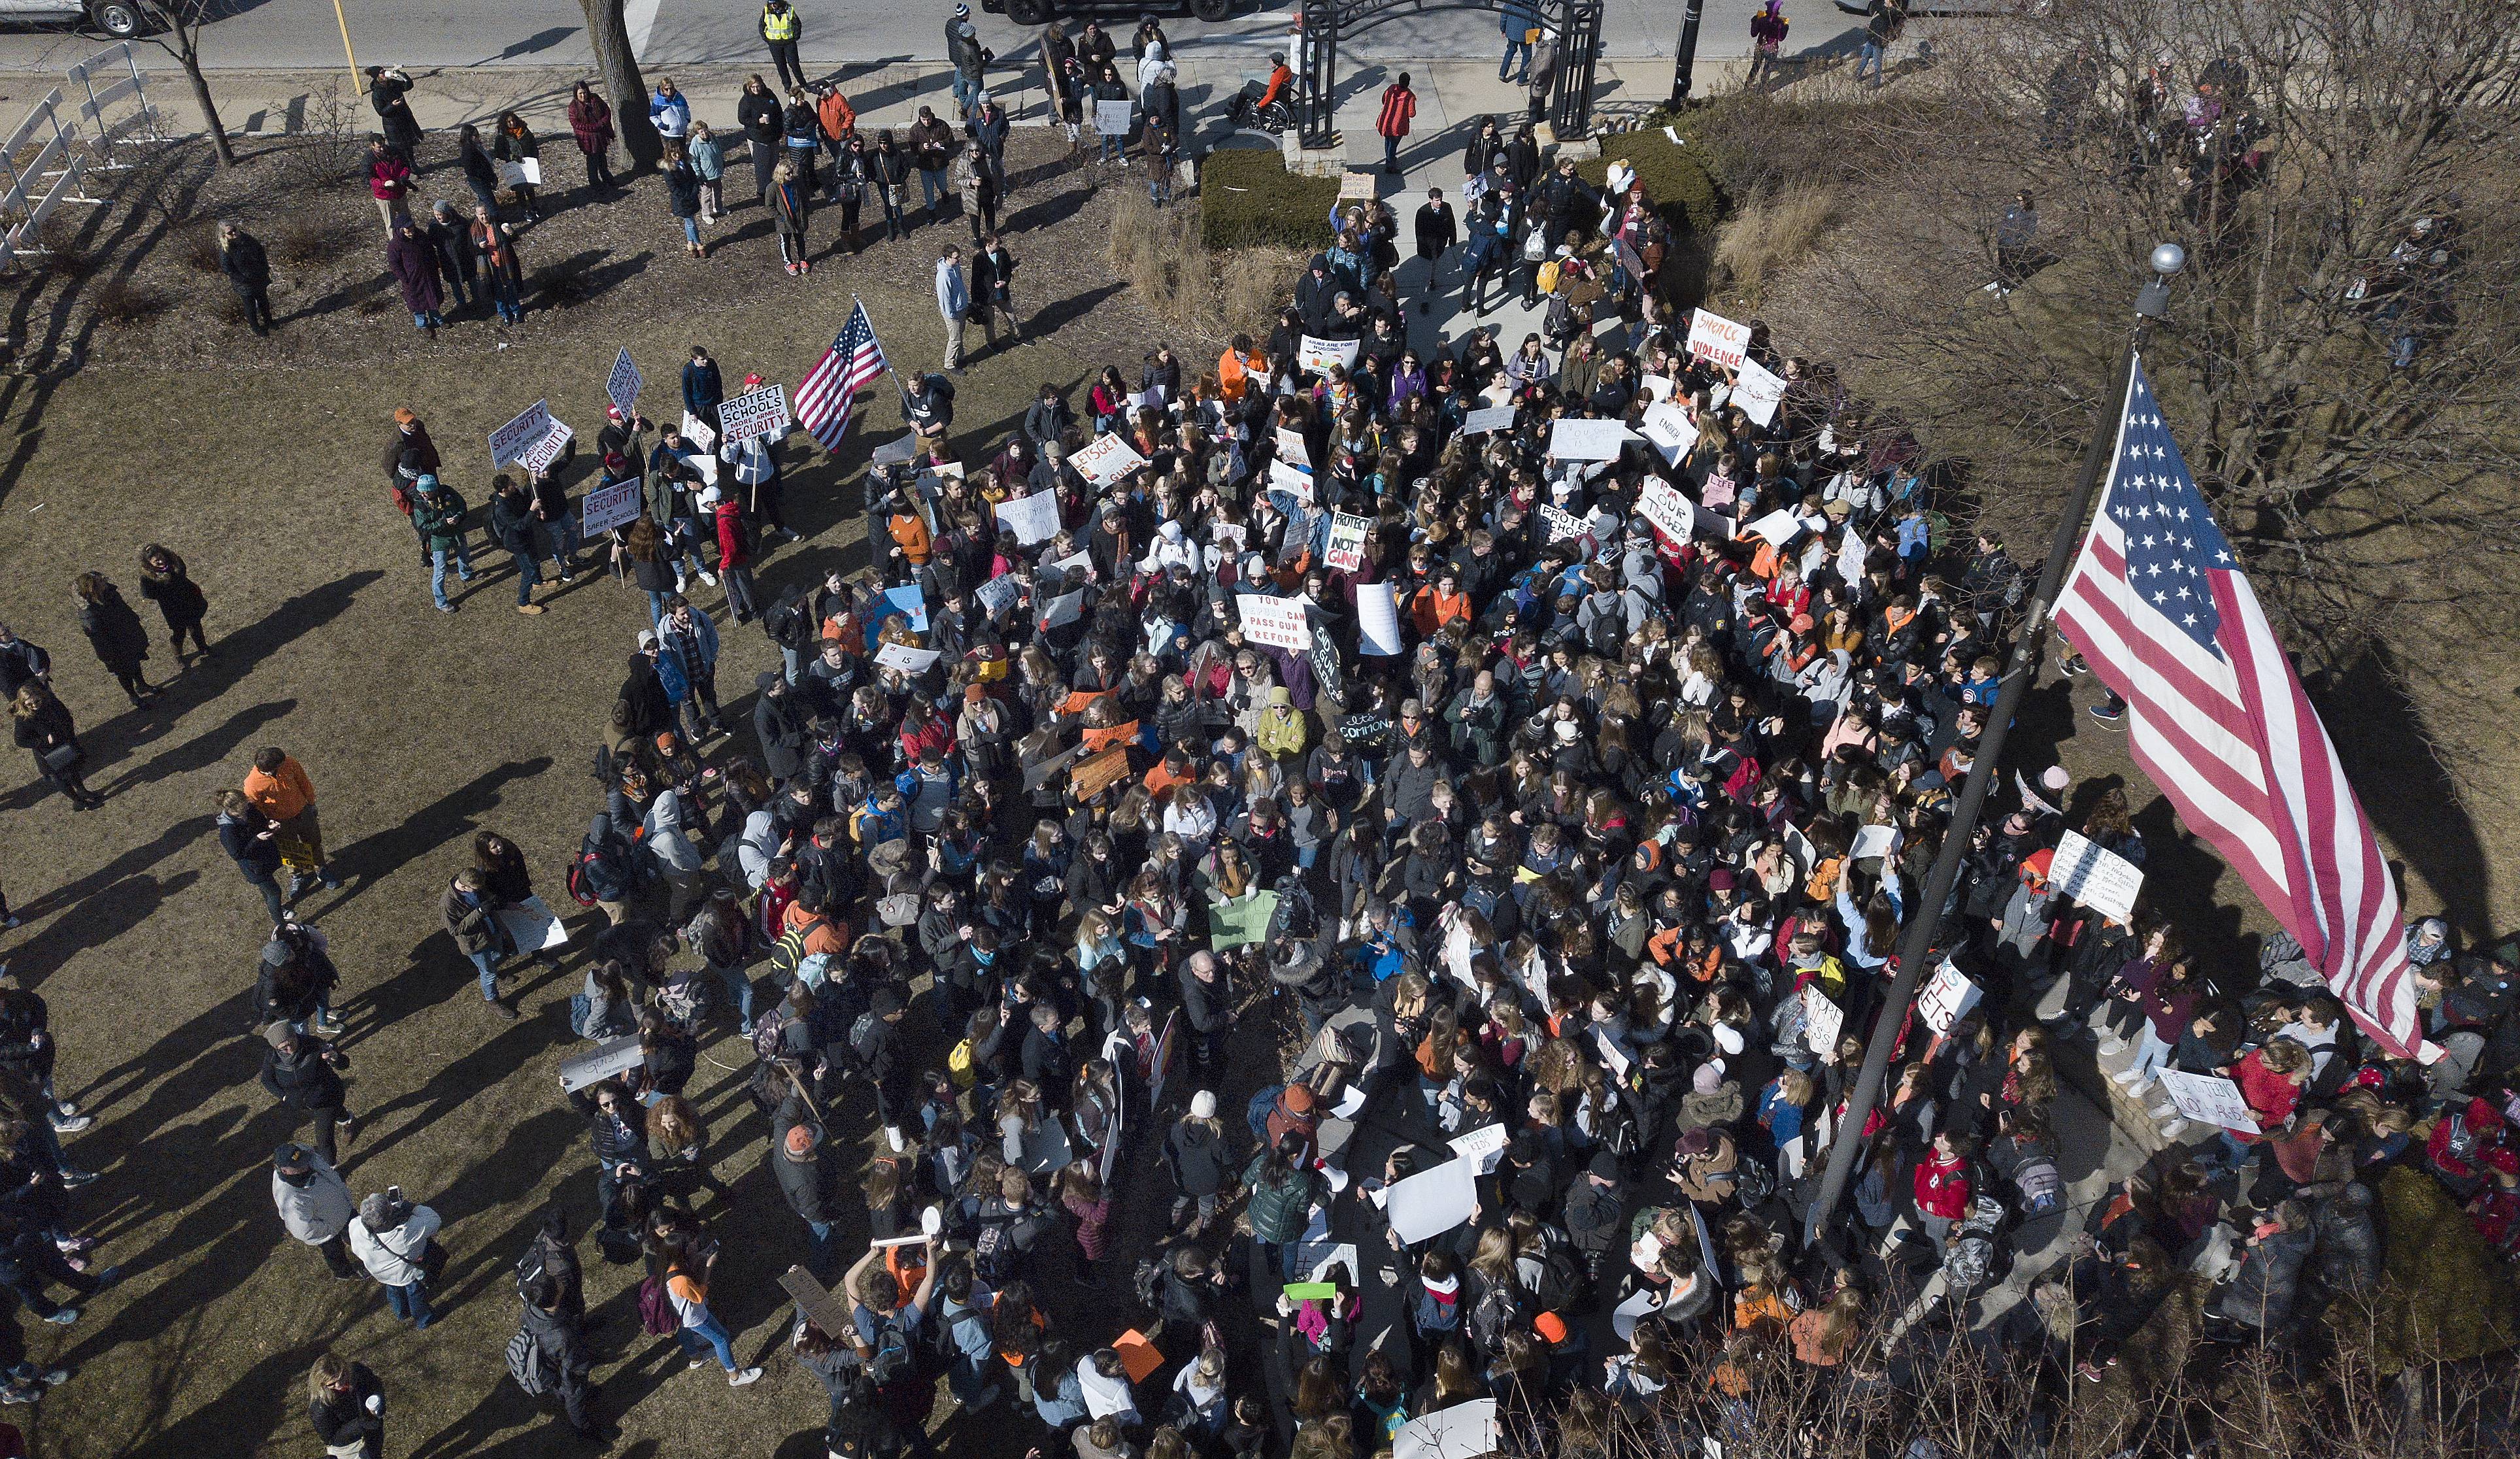 Nearly 500 Barrington High School students gather in Memorial Park near downtown Barrington to protest gun violence in schools and across the nation.